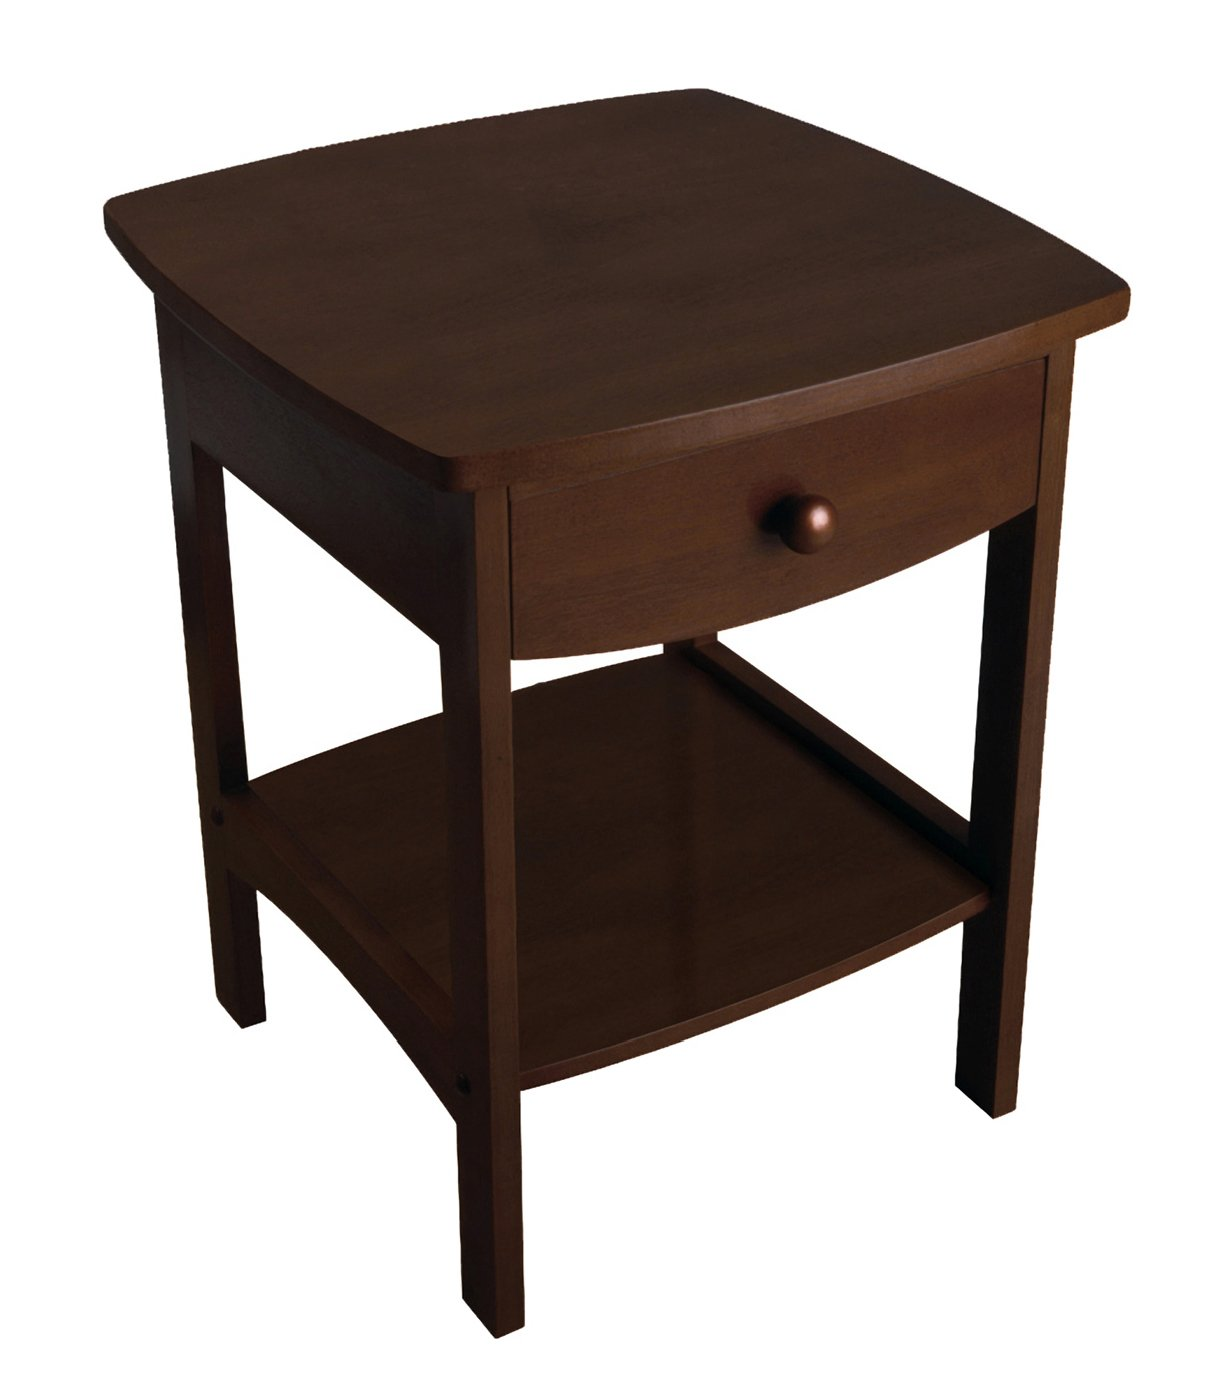 winsome wood claire accent table walnut kitchen tall square dining marble top gold coffee ceramic end stool pier imports patio furniture anchors ikea childrens storage boxes